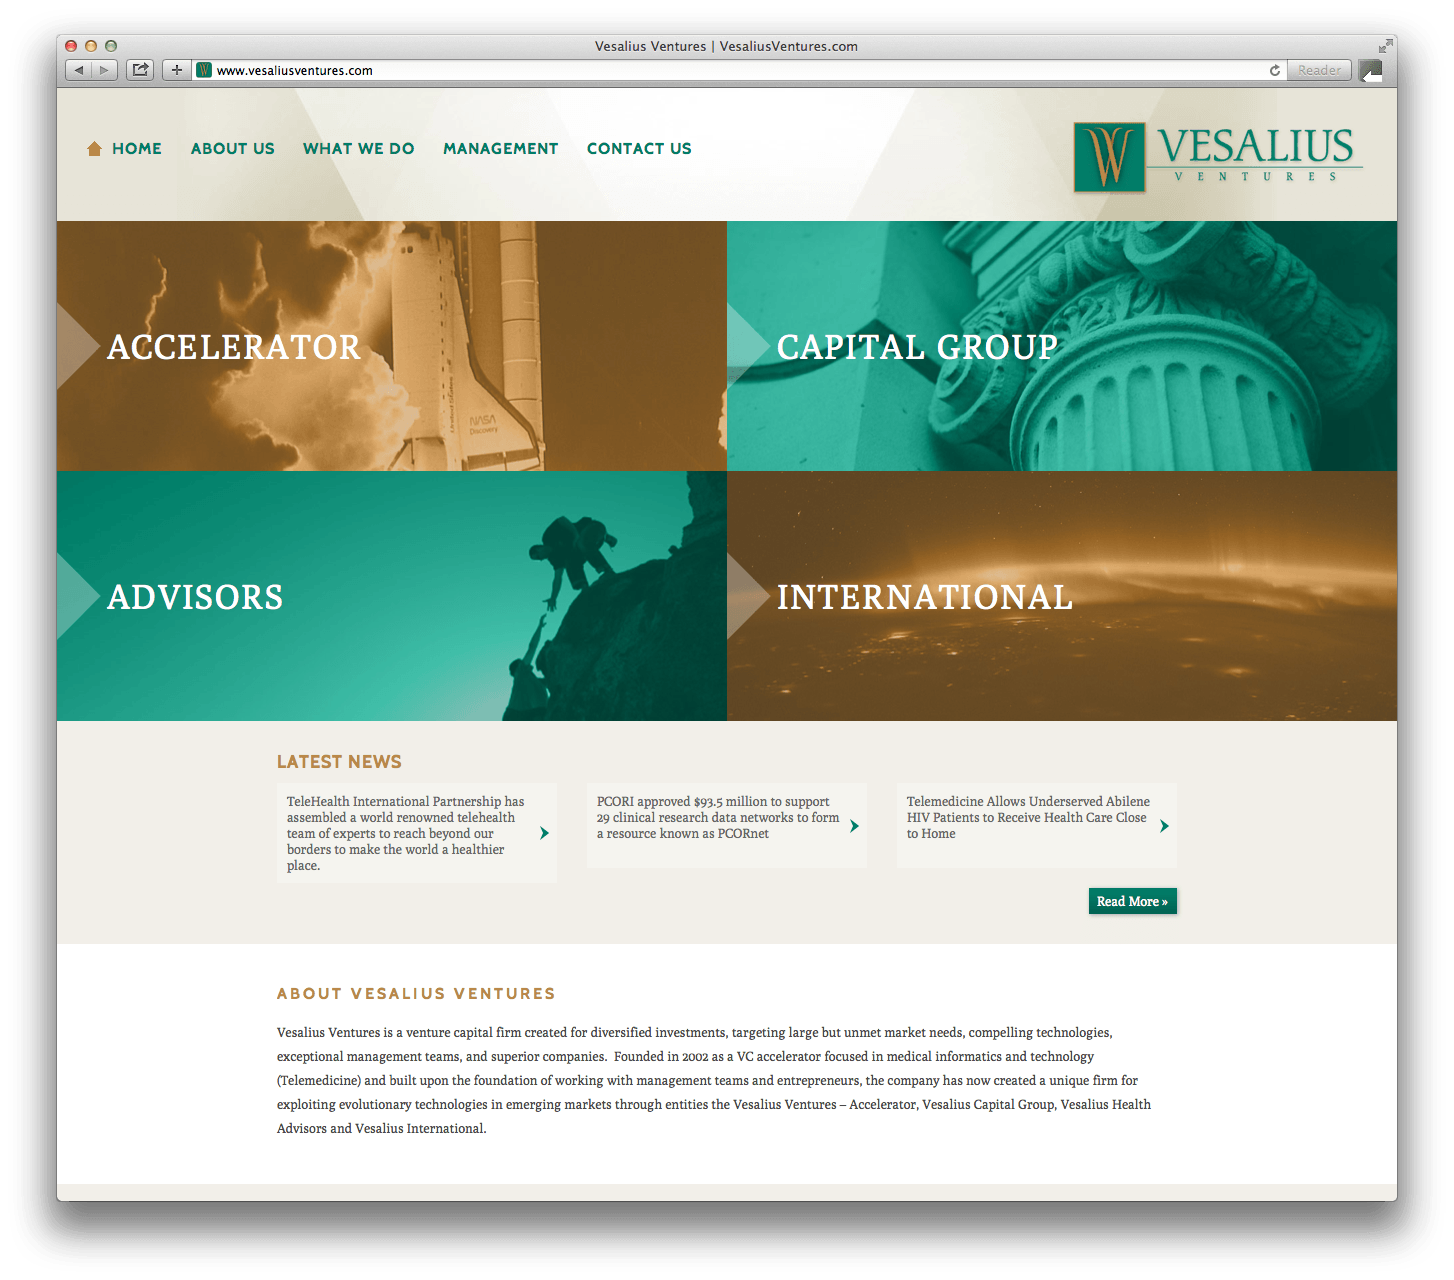 Vesalius Ventures Website Design